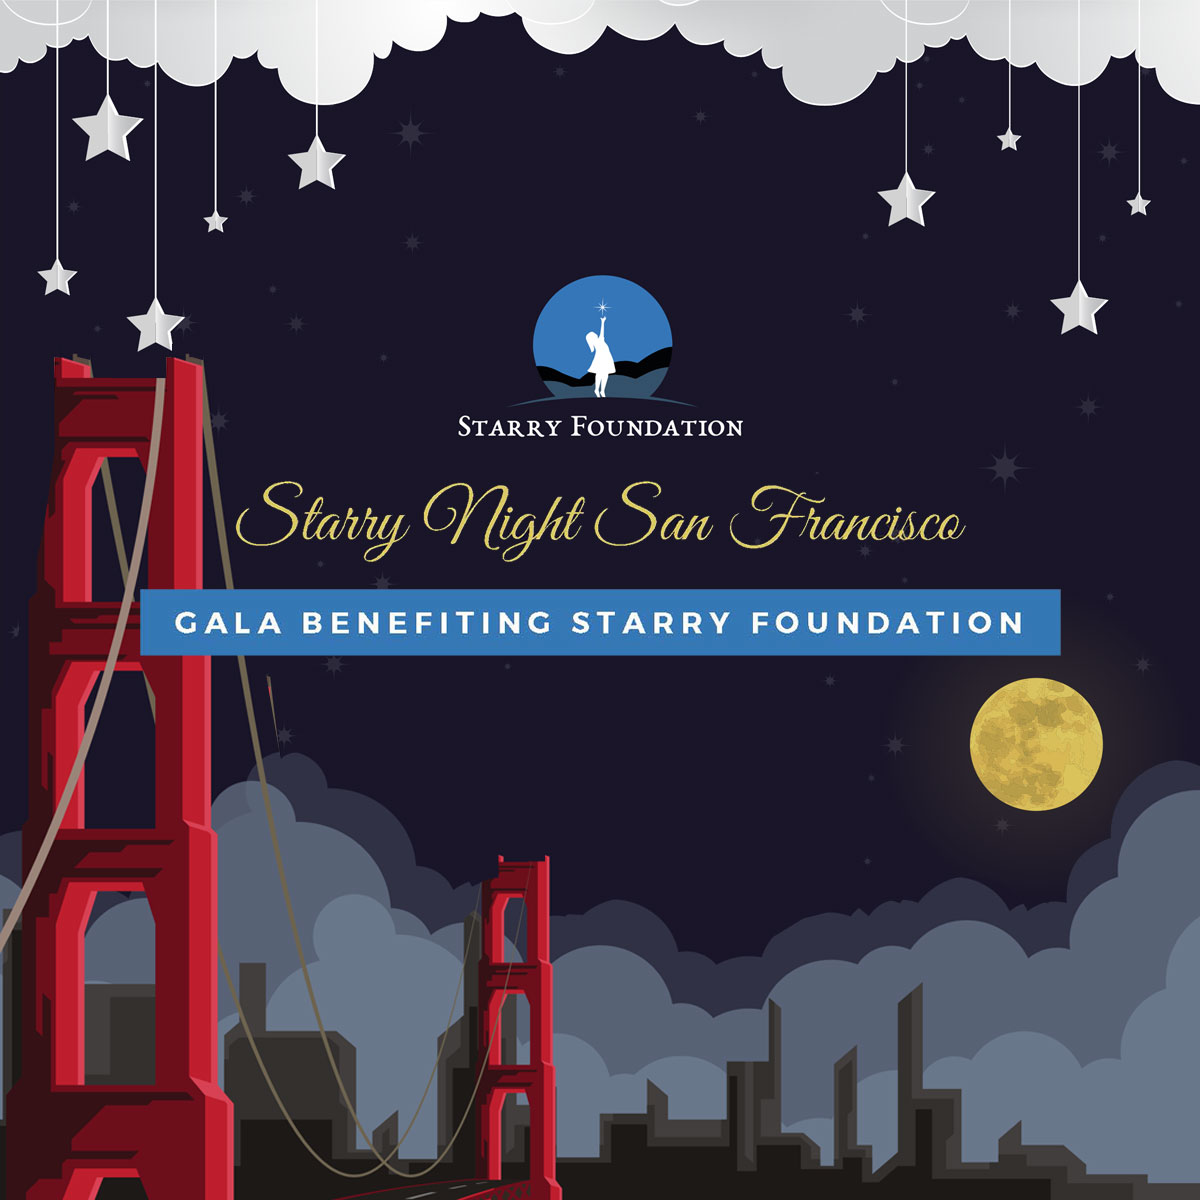 Join us for the Starry Night San Francisco Virtual Gala on Friday, September 18, 2020